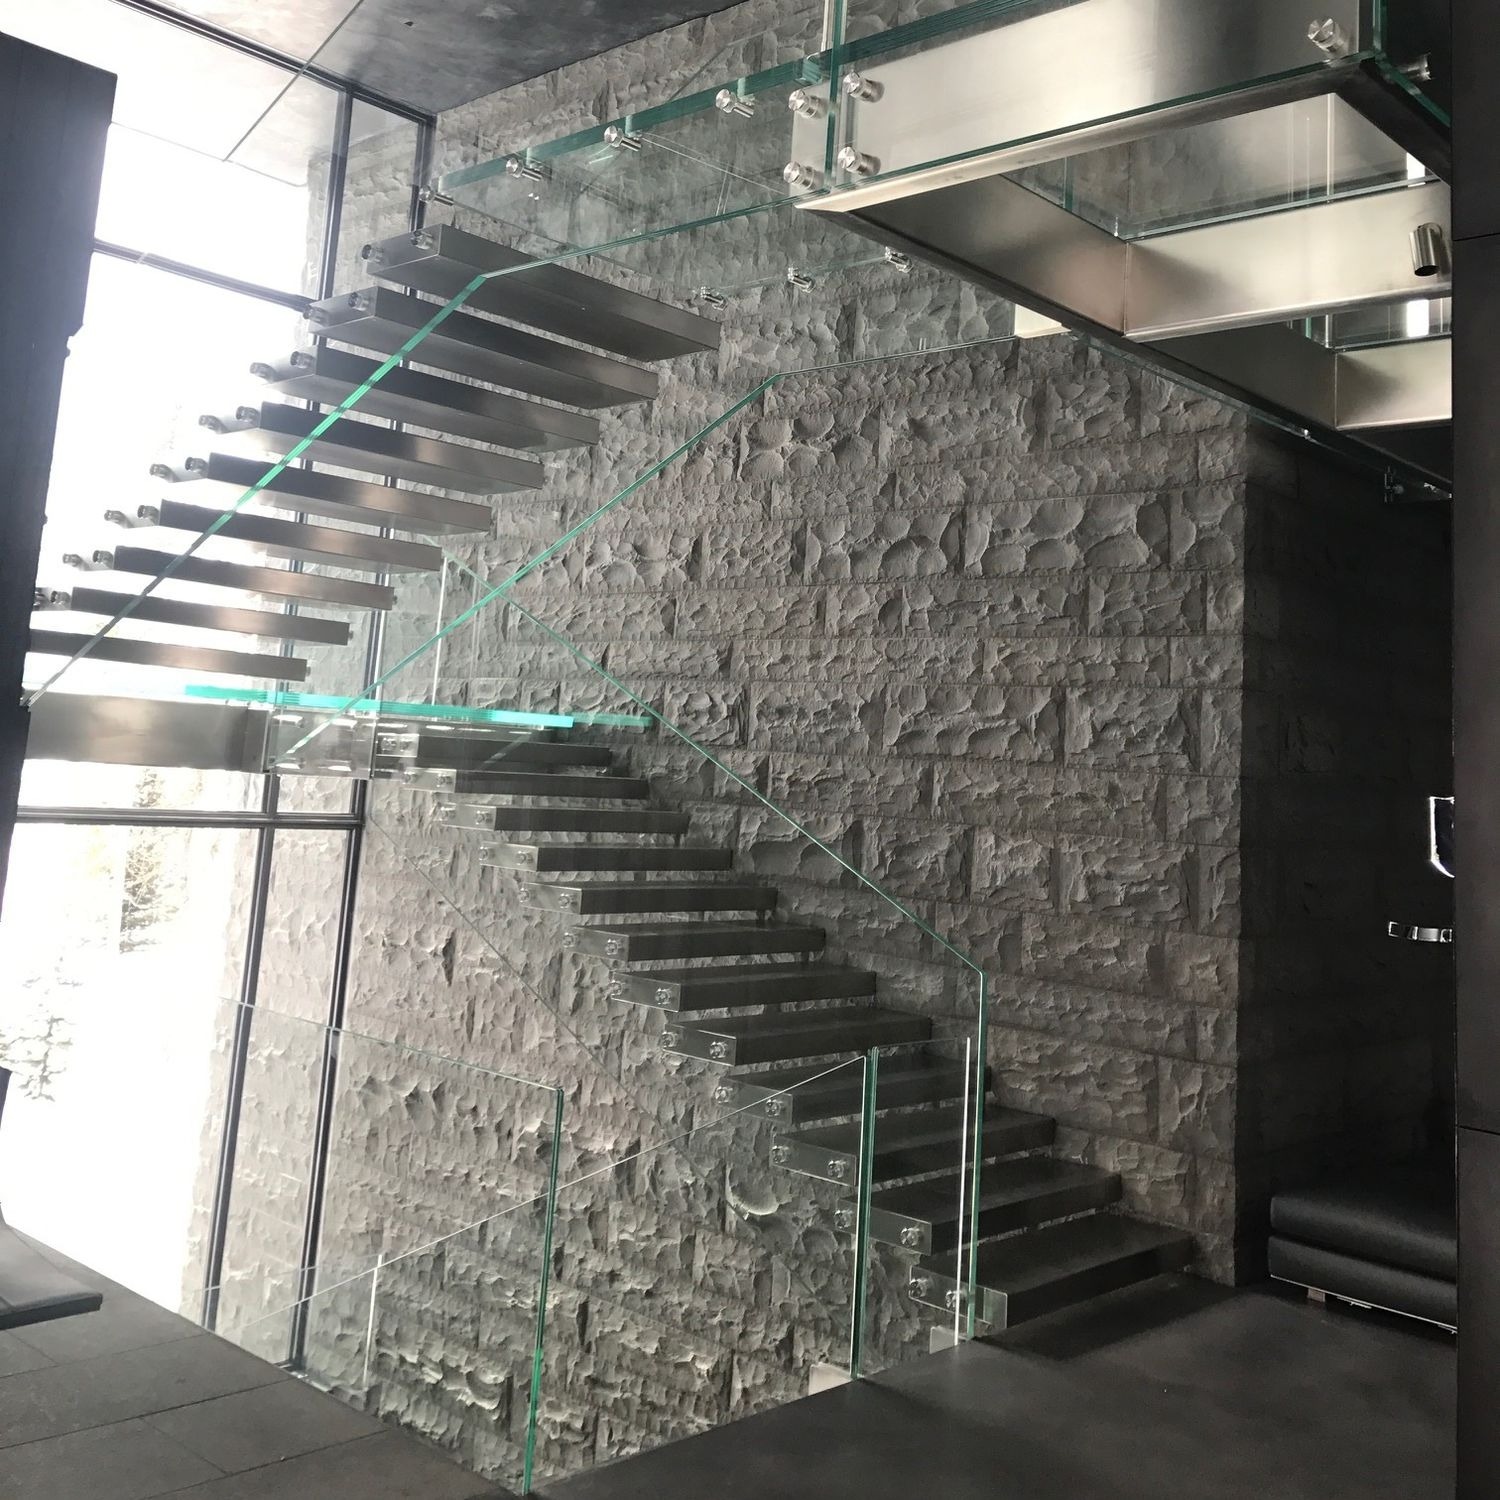 Half Turn Staircase Montana Siller Stairs Glass Frame   Steel Steps For Stairs   Iron Plate   Steel Structure   2 Step   Metal Floor Plate   Double Stringer